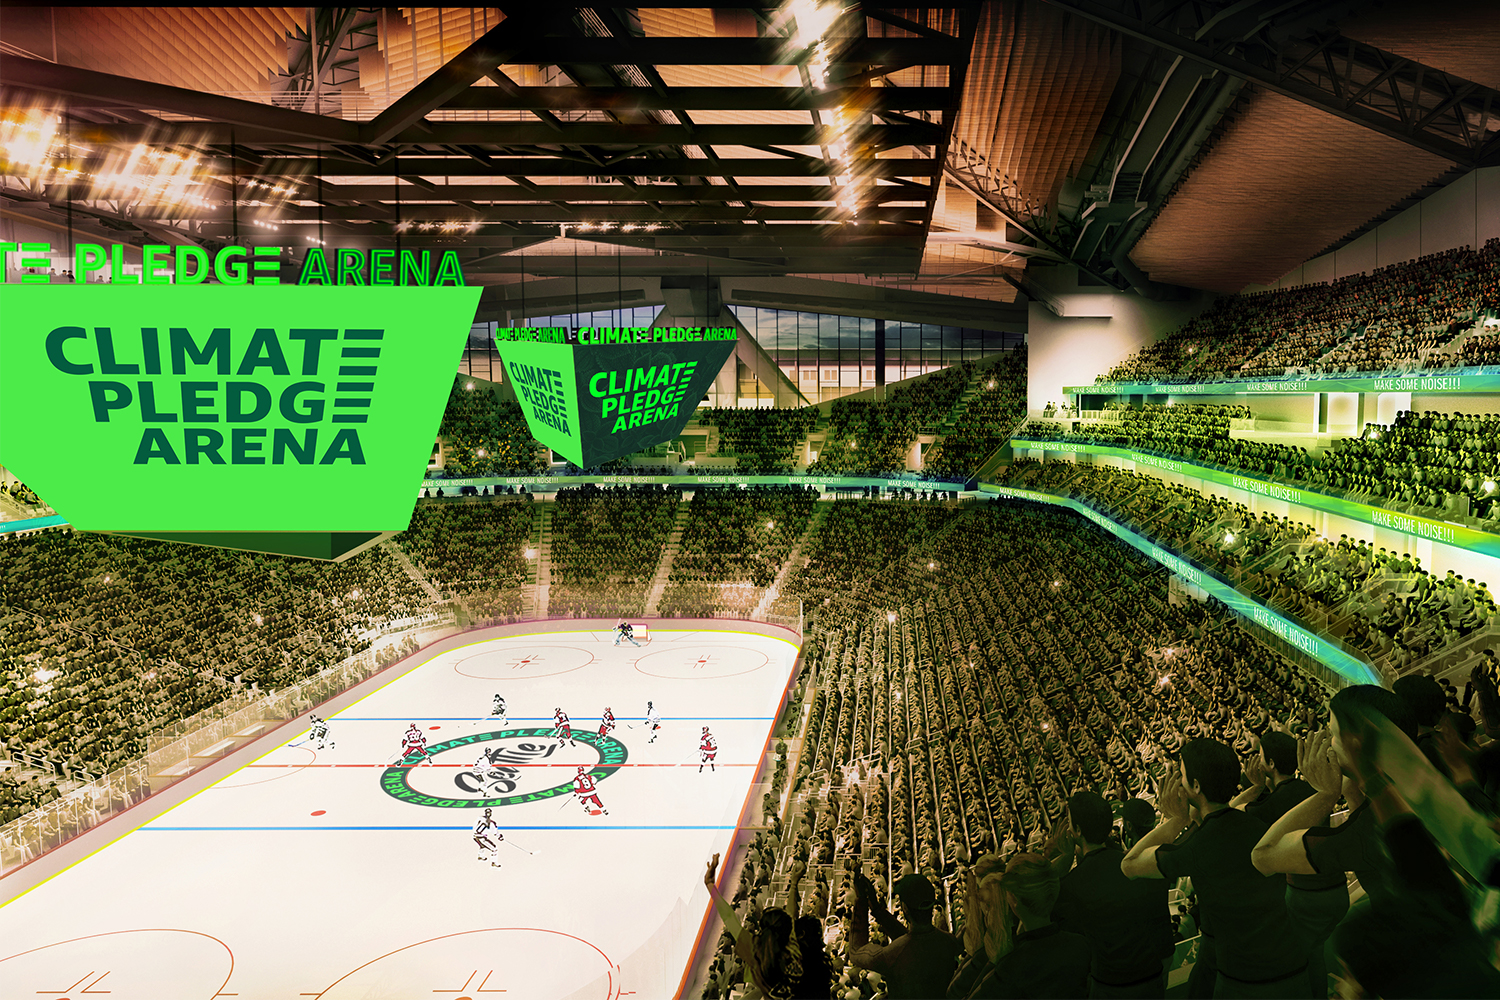 Amazon's upcoming Climate Pledge Arena for NHL Seattle